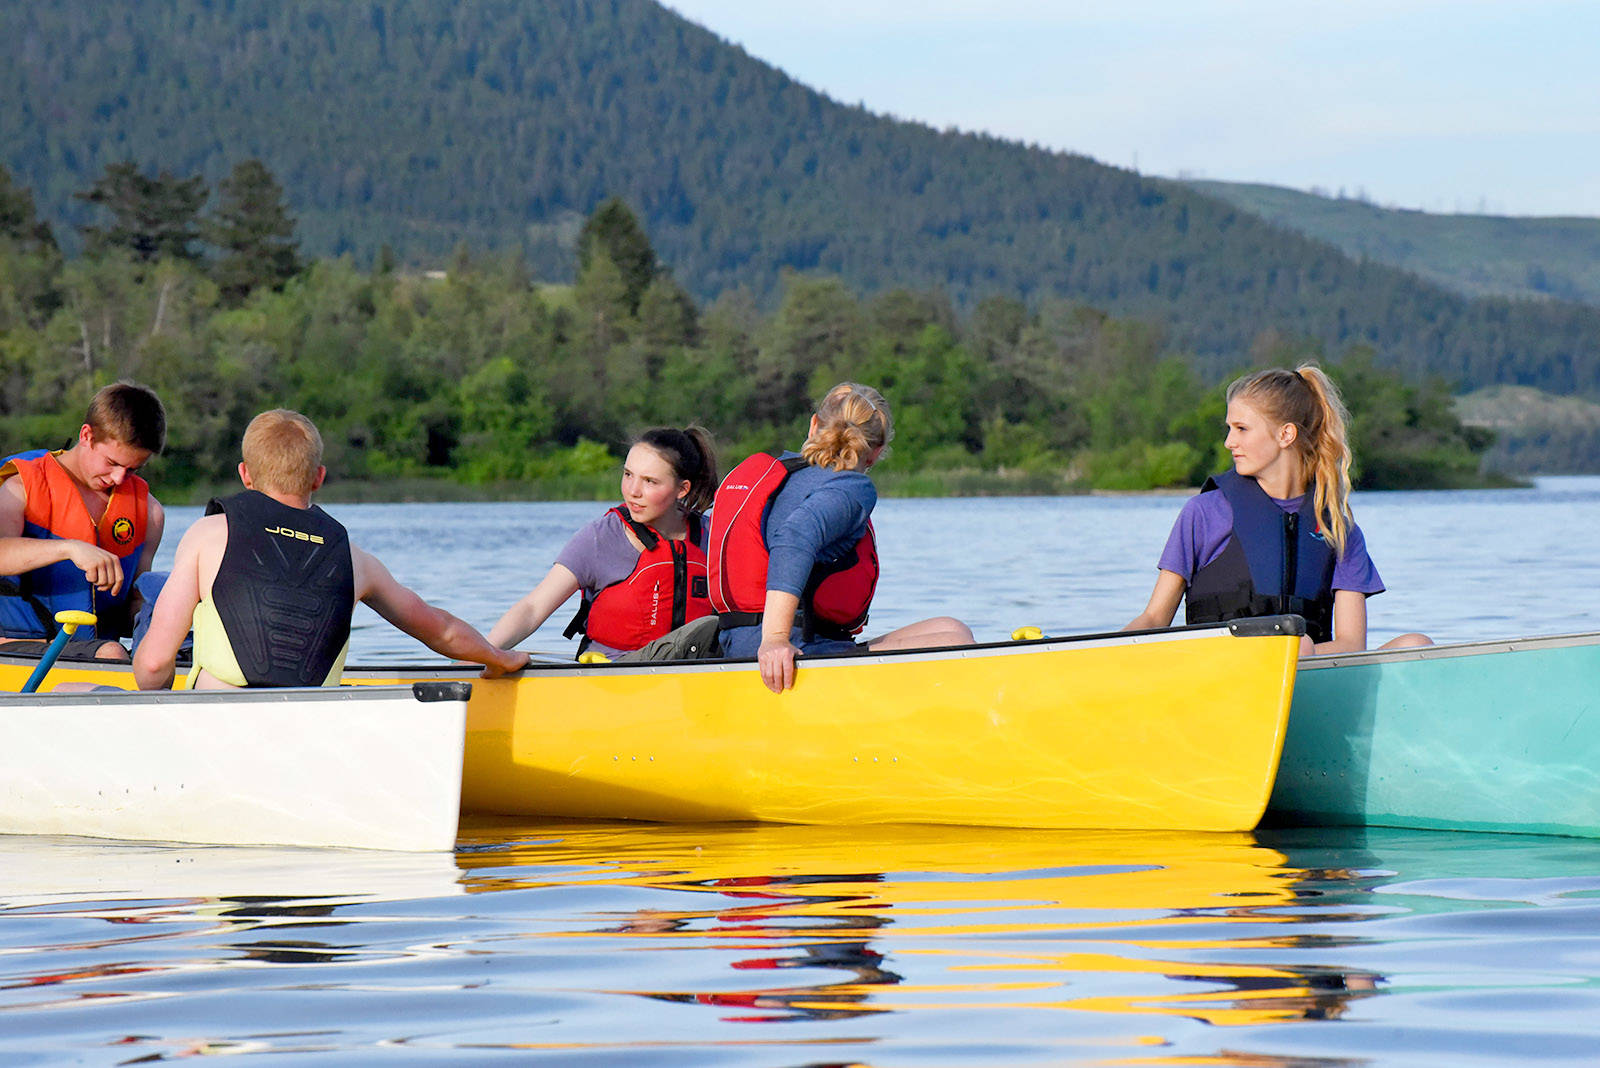 Canoes can provide graceful transportation on the water, although they are not the swiftest watercraft. Do you know the fastest speed obtained on water? (Black Press file photo)